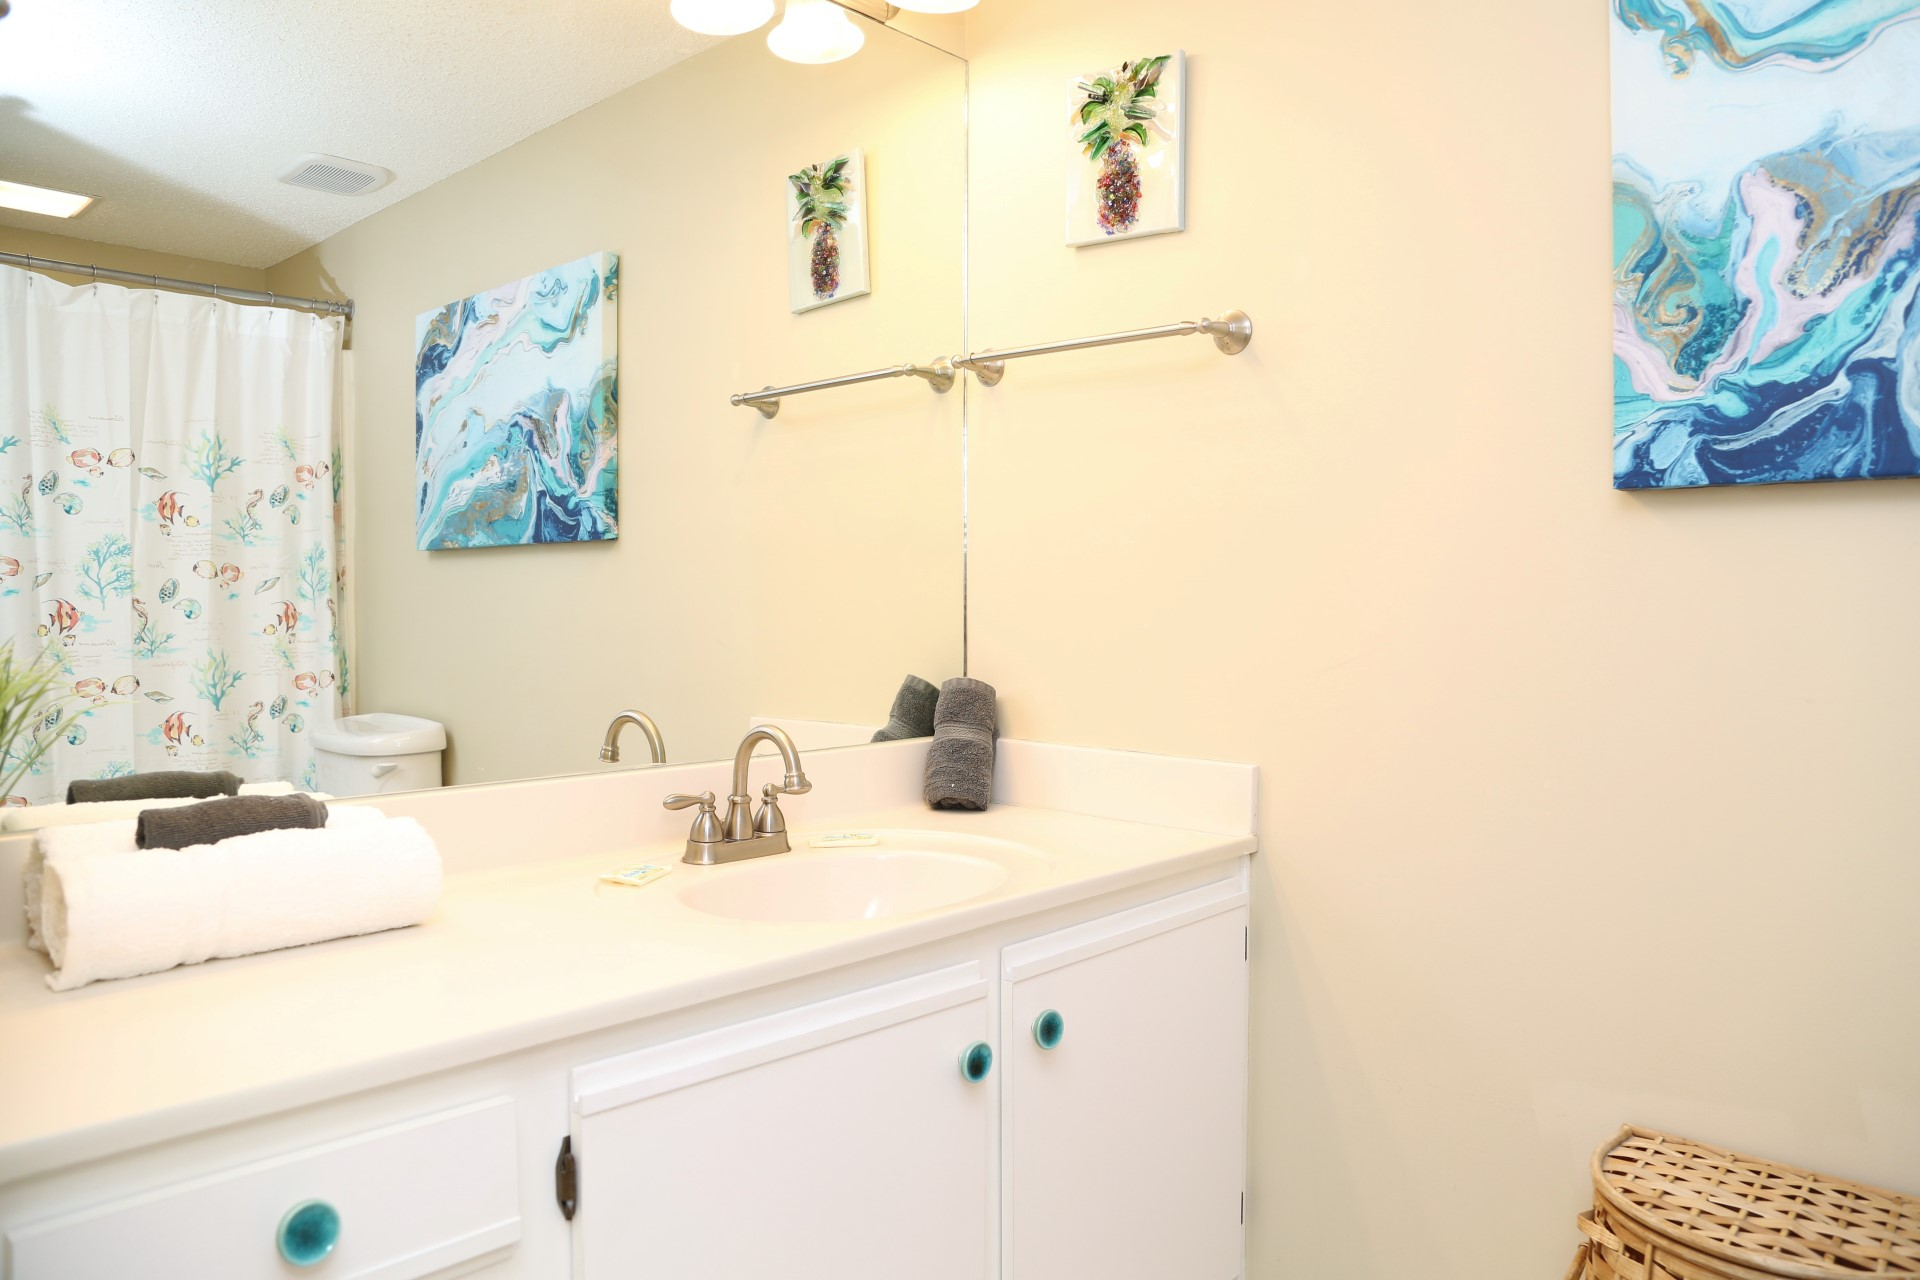 The master bathroom includes a large vanity with plenty of c